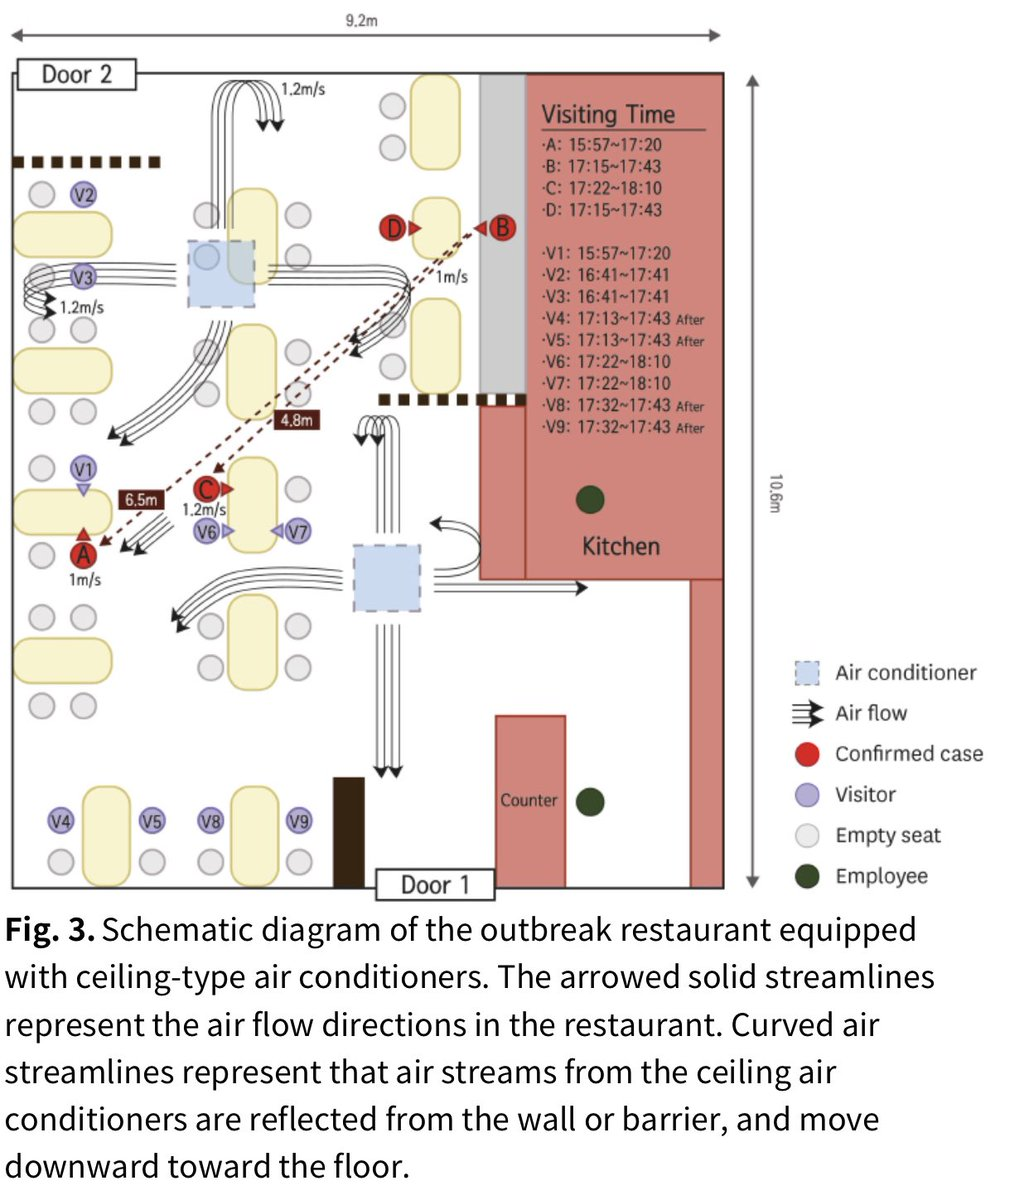 📍Airborne transmission—Look how a South Korean high school student became infected after **5 minutes of exposure from >20 feet away**. We cannot keep using the 6-feet (2 m) standard of social distance to keep people safe. Indoor dining not safe! #COVID19 latimes.com/world-nation/s…